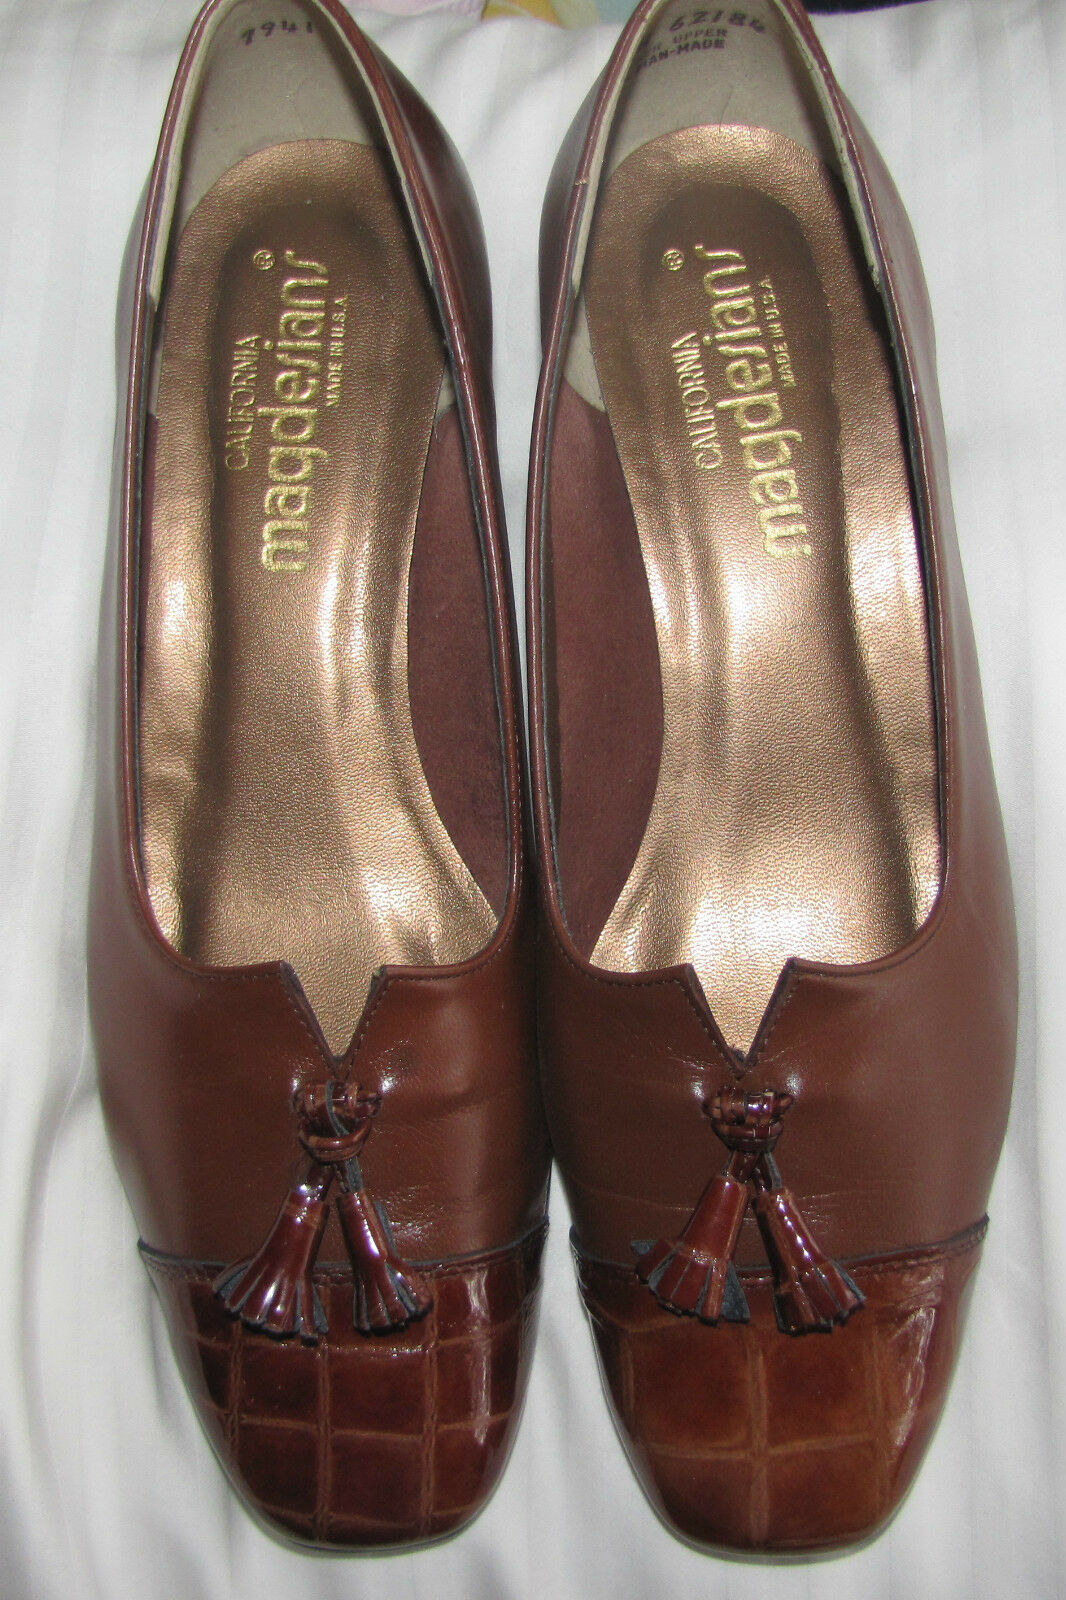 NEW California MAGDESIGNS Tan Renee Nappa Shoes SIze 8.5 W